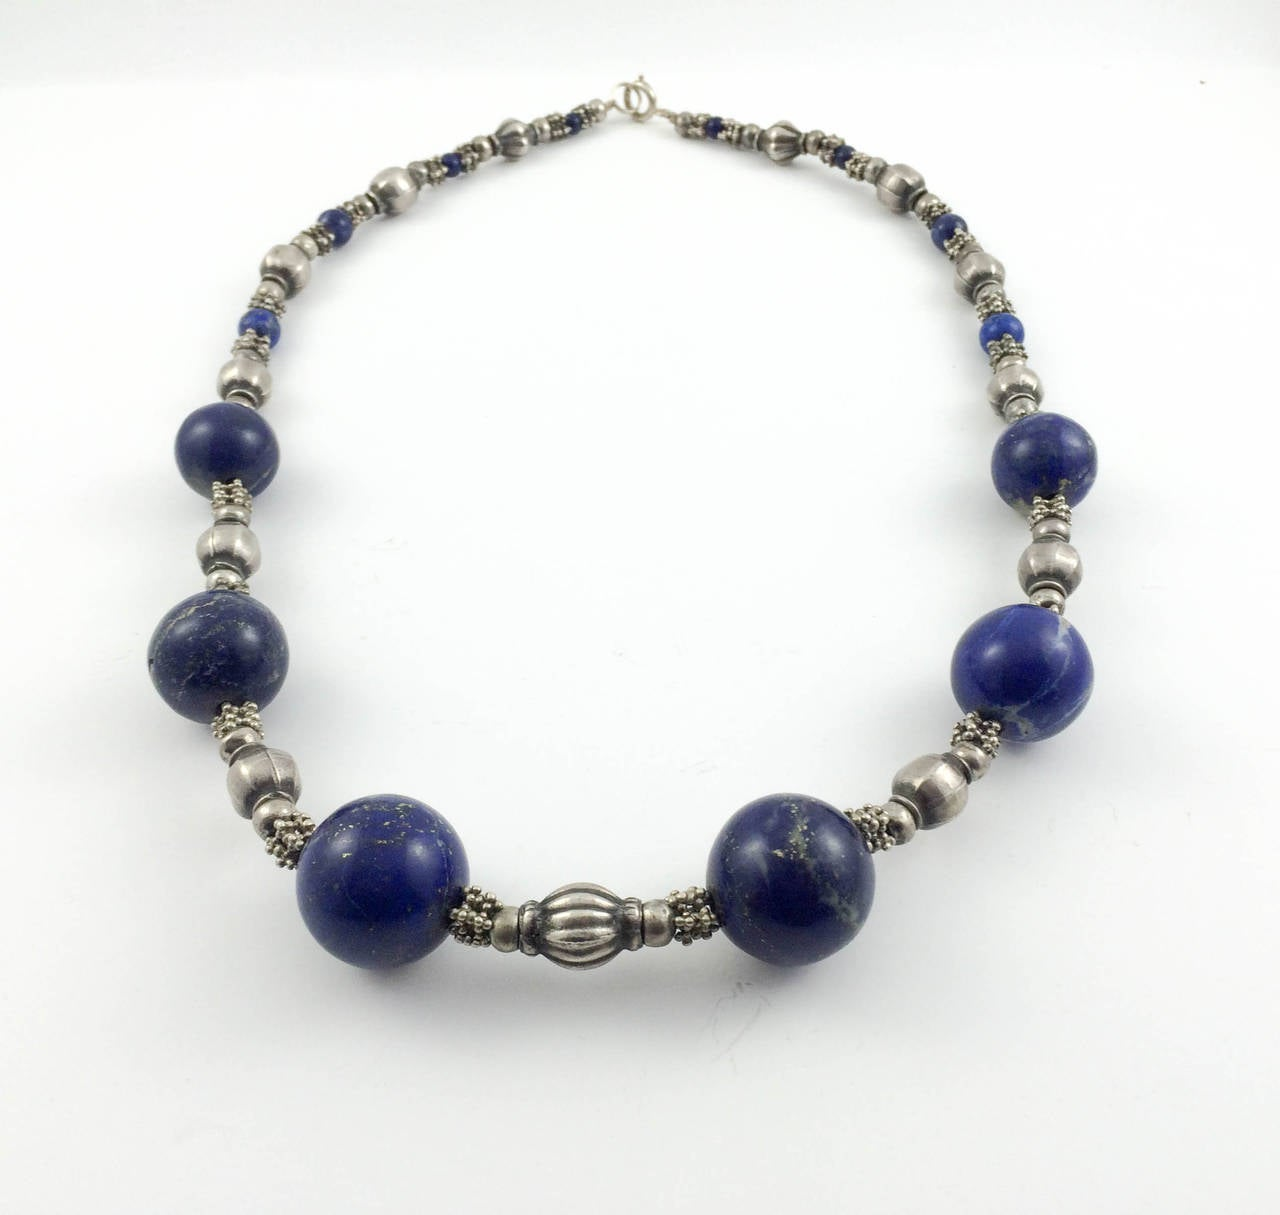 Silver and Lapis Lazuli Necklace - 1970s 4